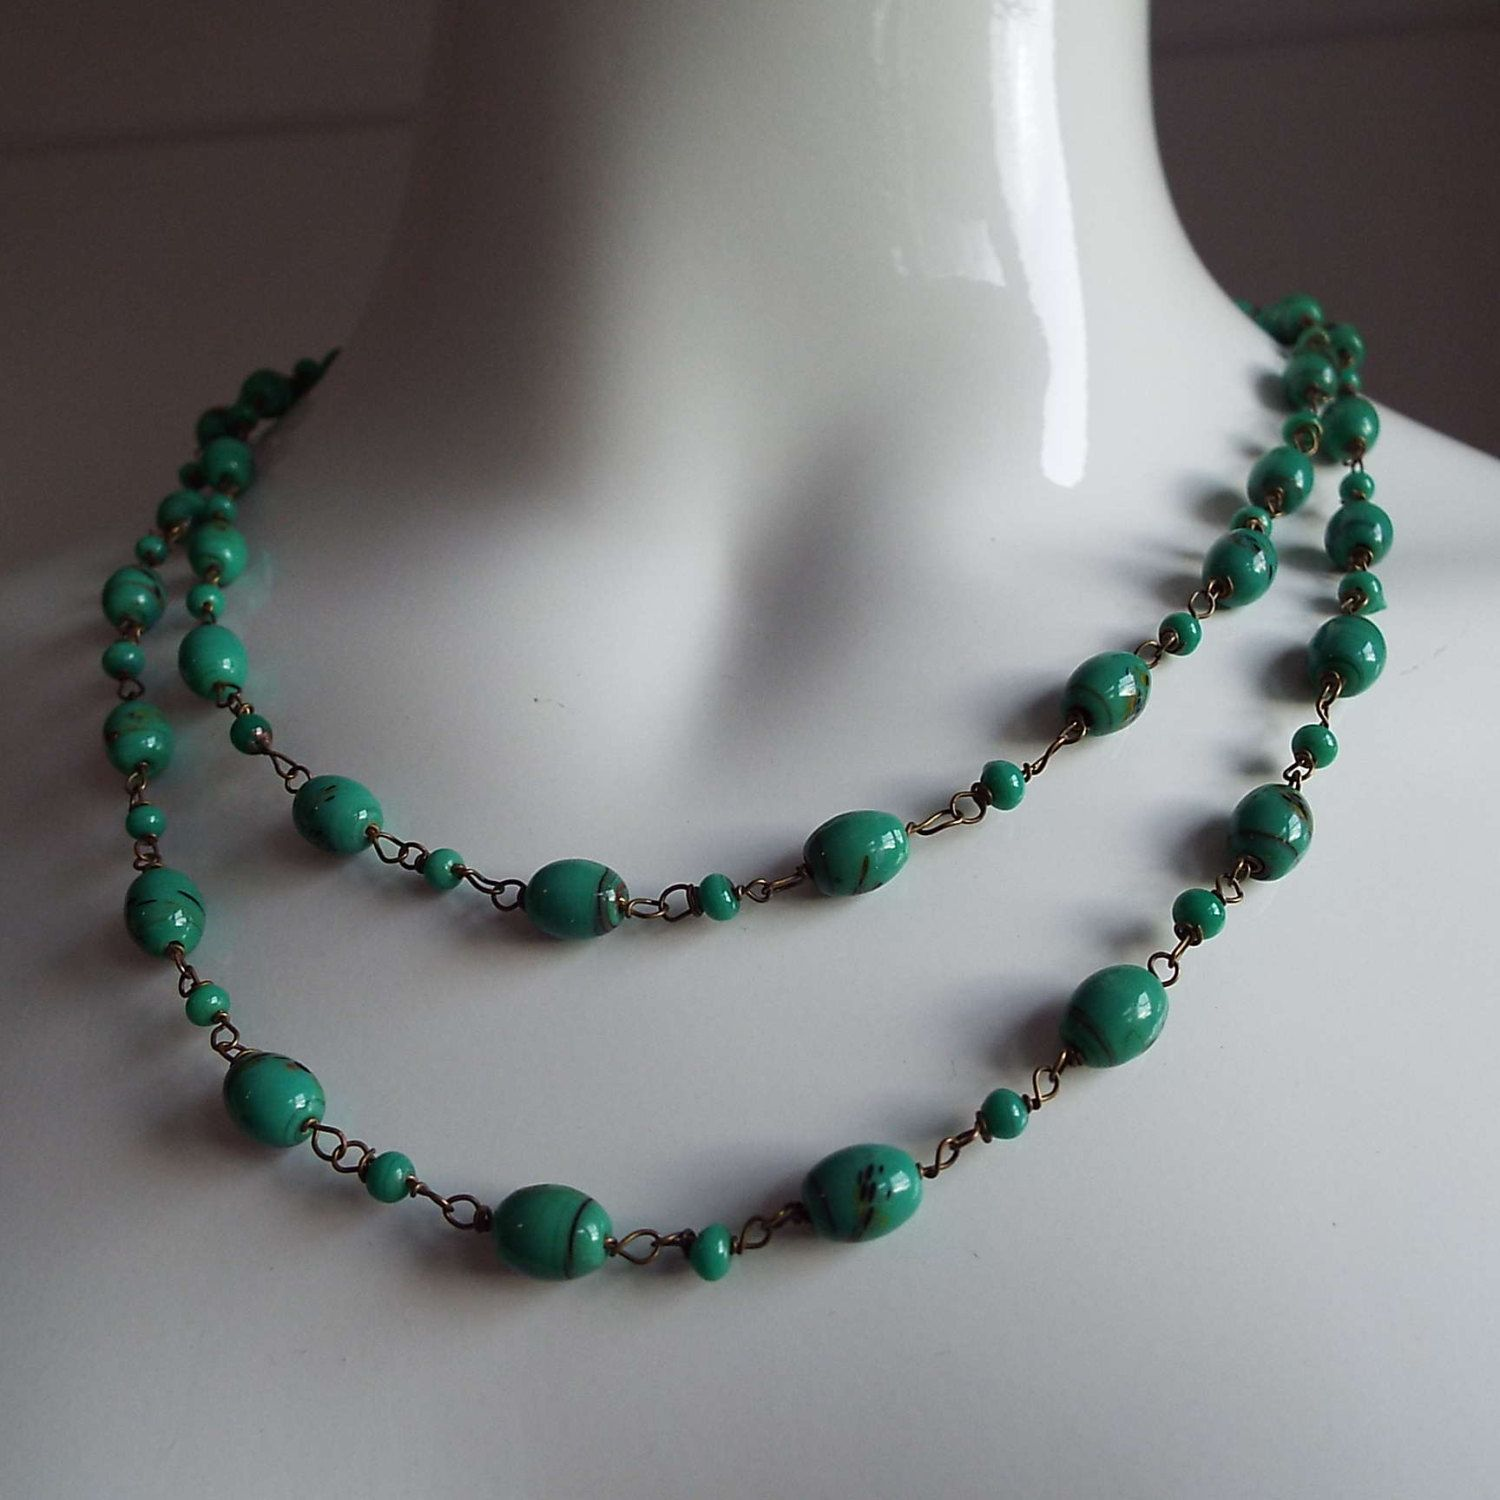 Vintage Art Deco Glass Beaded Necklace Flapper Necklace 1930's by VintageBlackCatz on Etsy